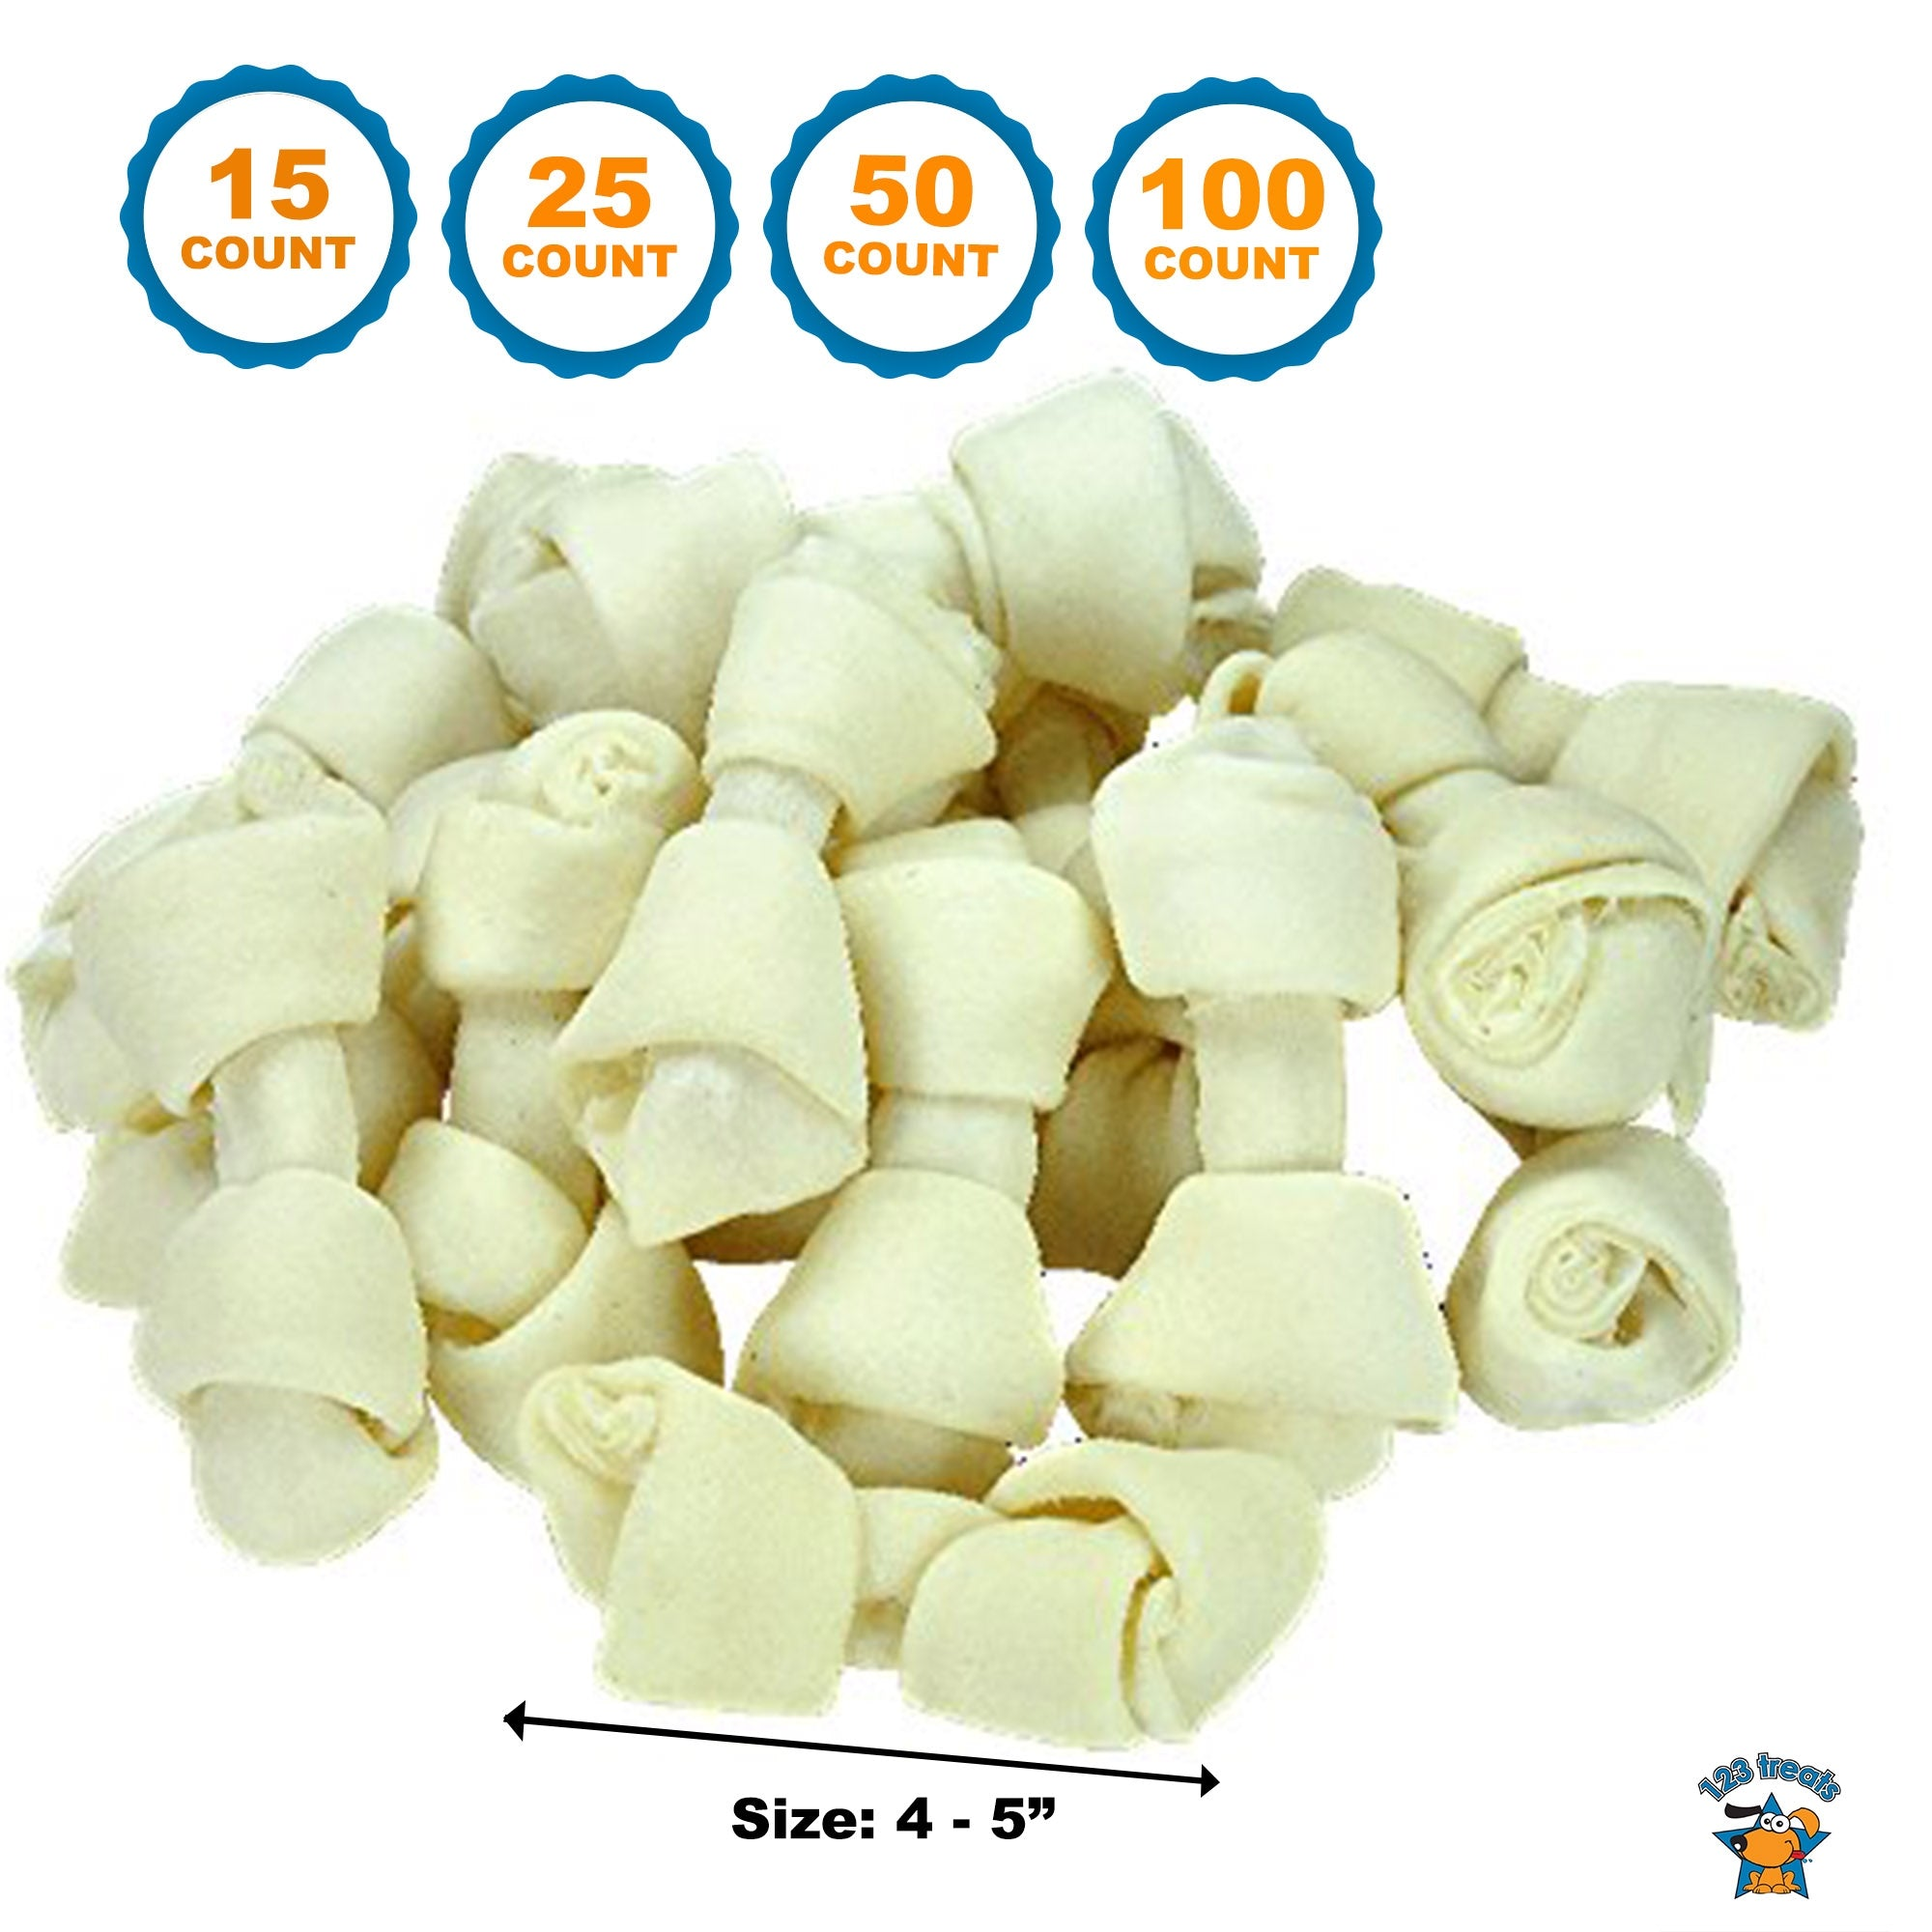 "4-5"" Rawhide Bones for dogs 